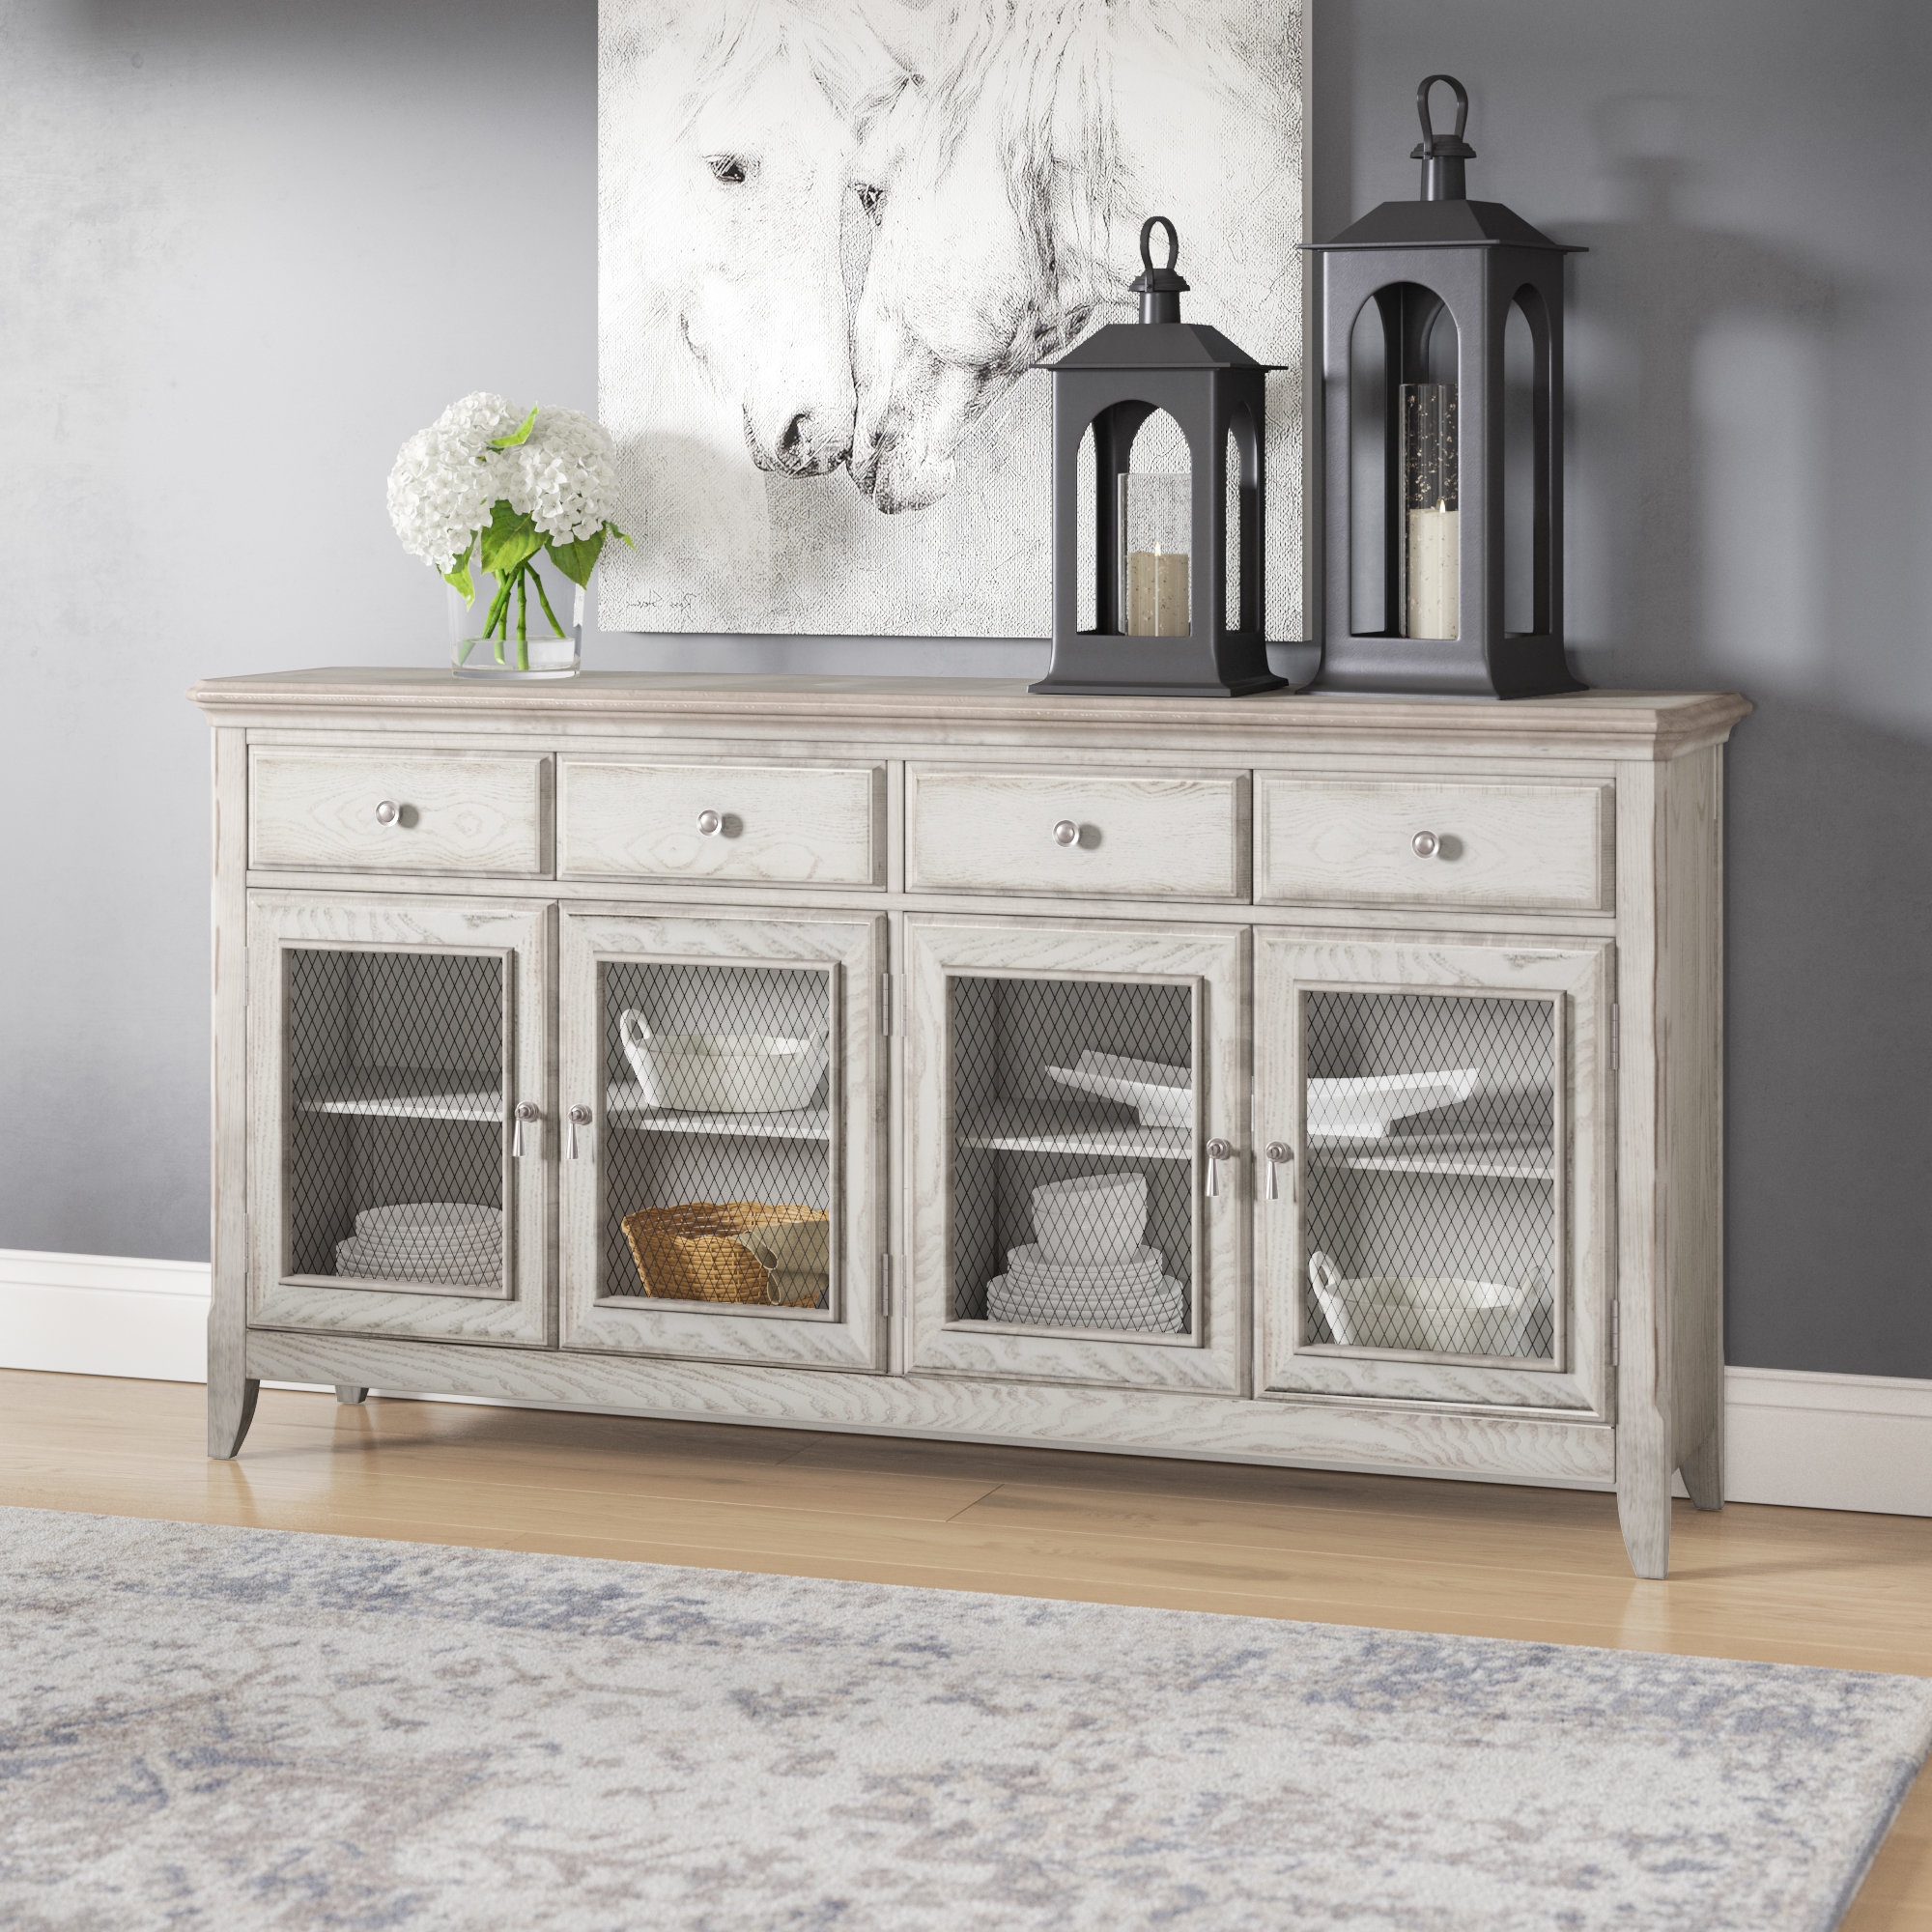 Widely Used Candace Door Credenzas Regarding 2 Door Credenza (View 16 of 20)